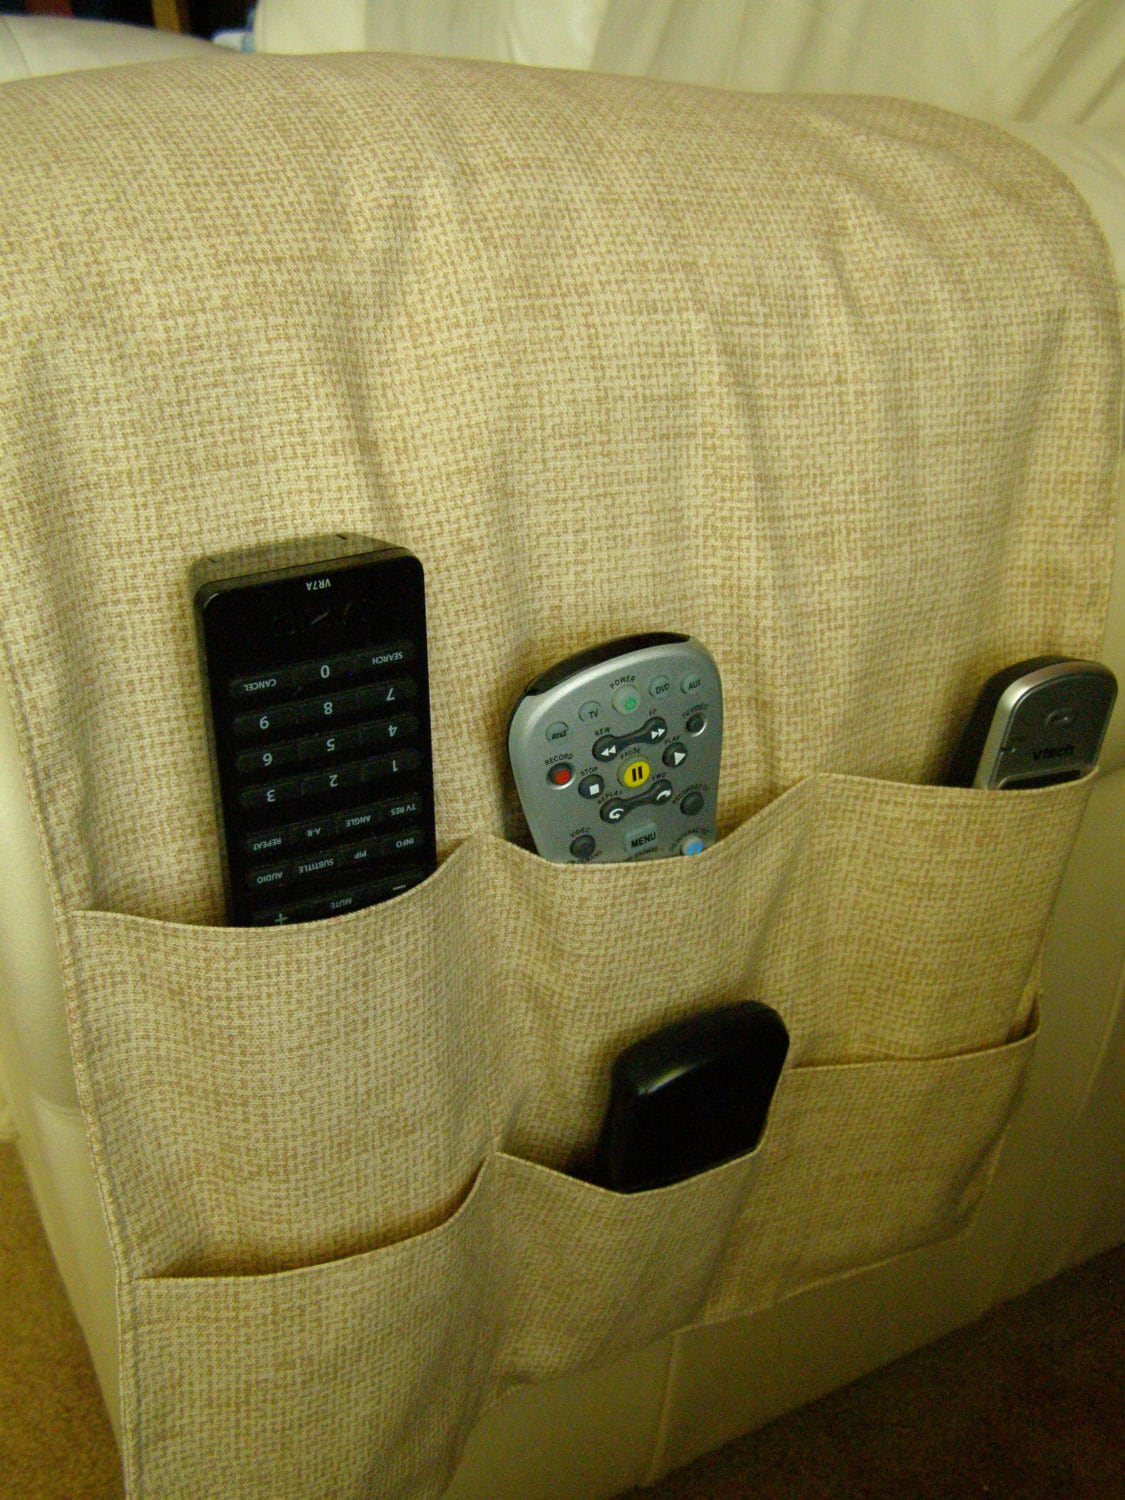 chair pocket organizer vintage wood folding chairs caddy tv remote control holder 6 beige/tan